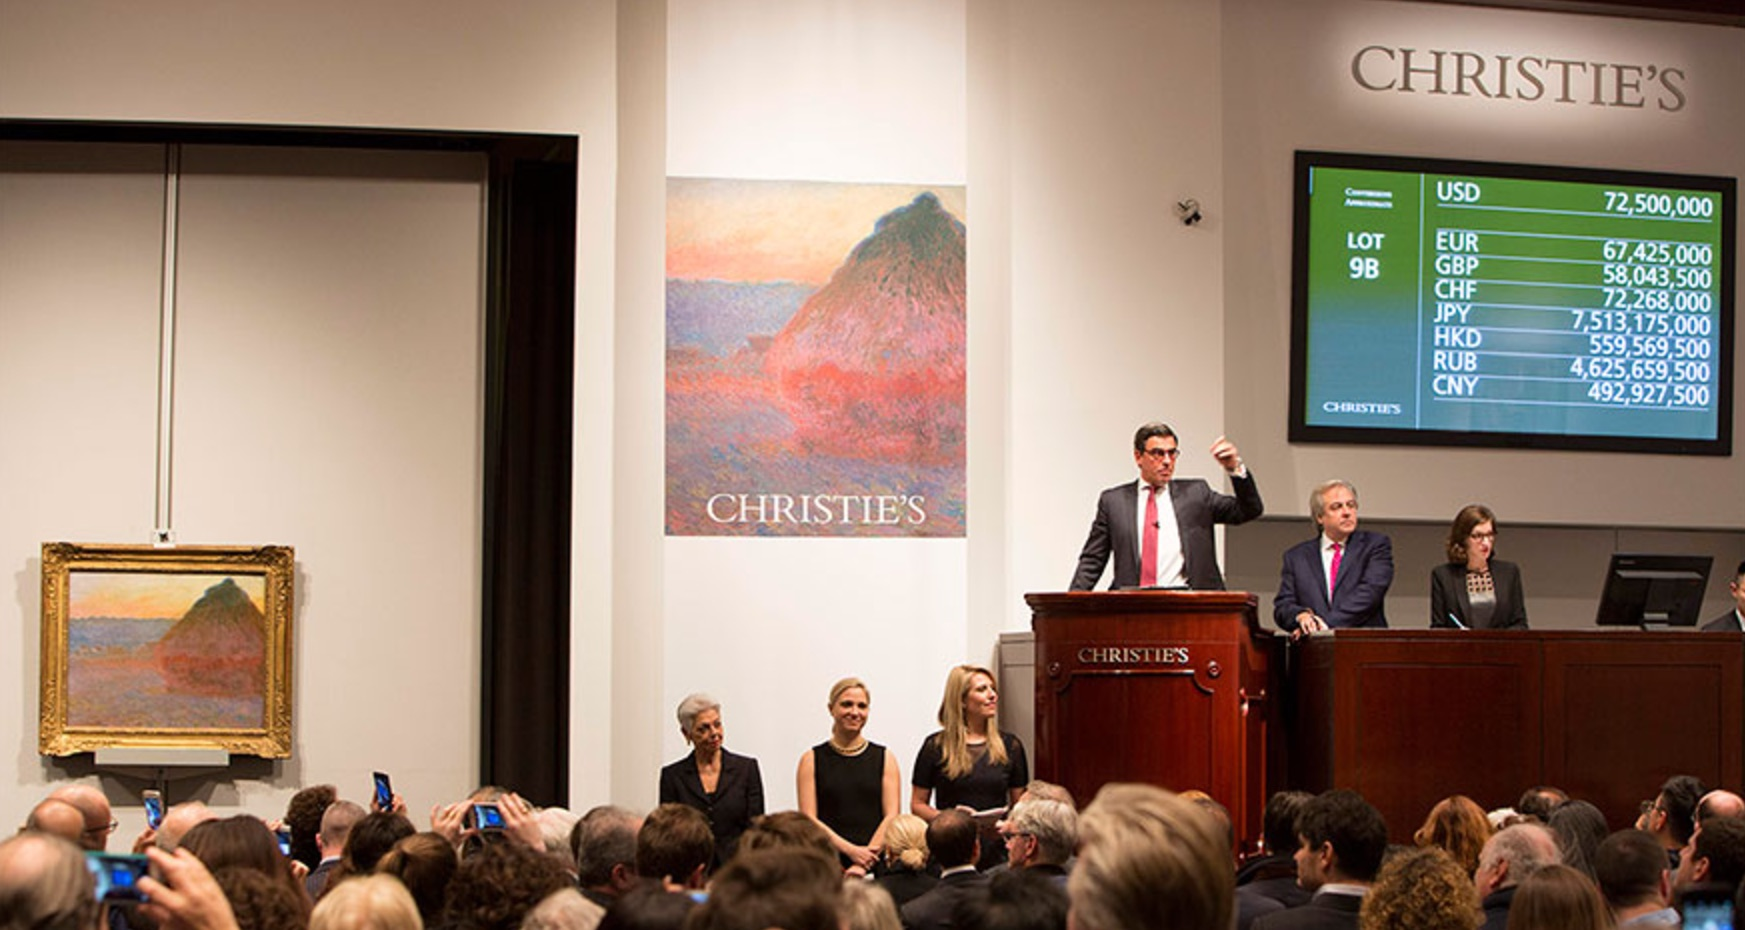 Christie's New York, dražba Monetova obrazu Meule, 16. 11. 2016